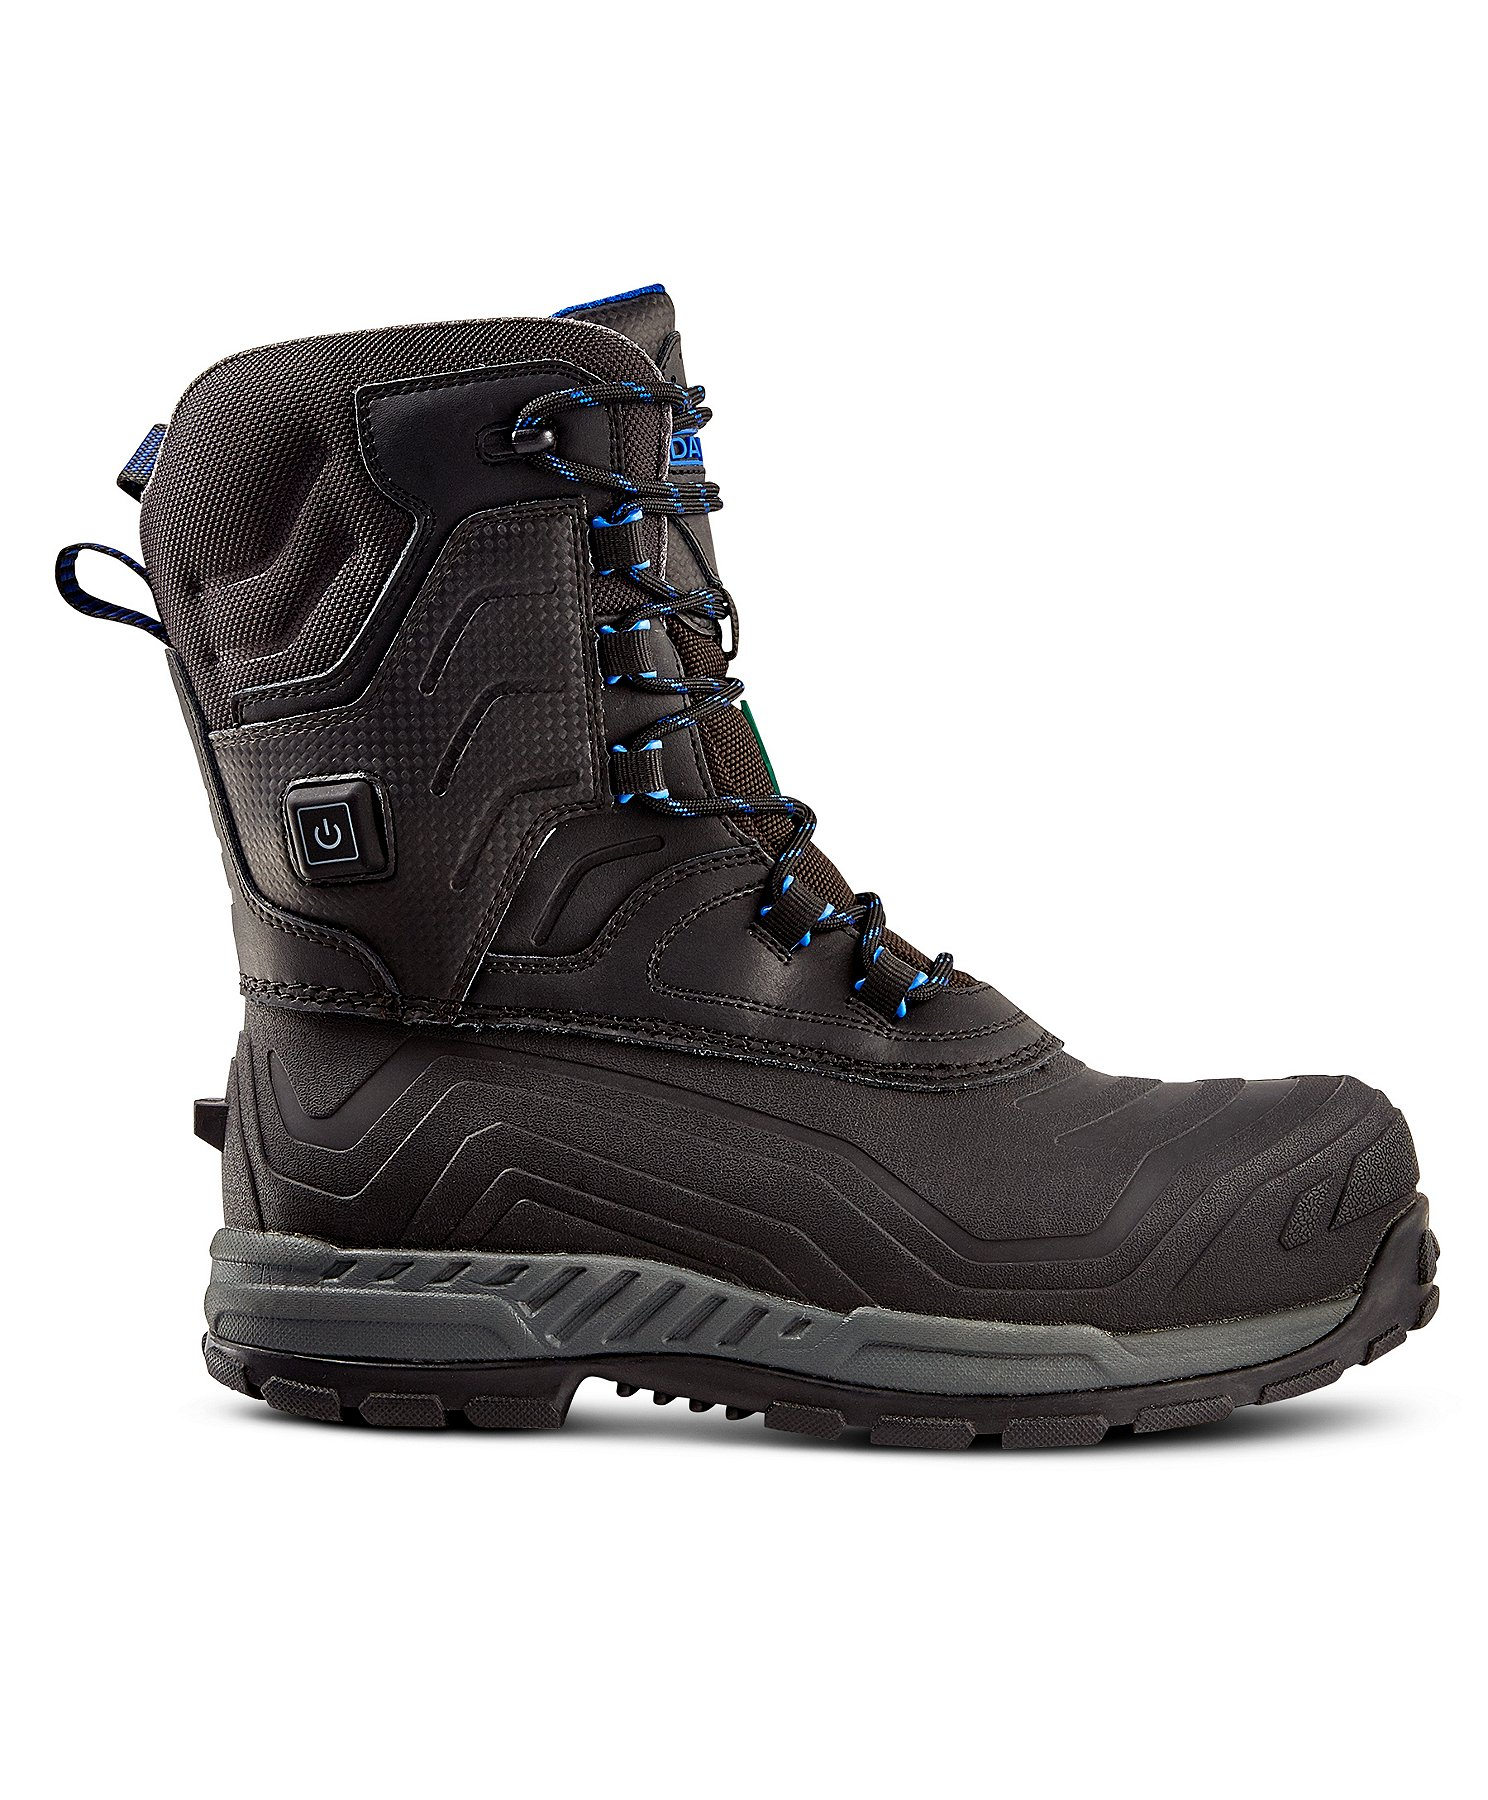 Men's Thermalectric Heated Composite Toe Composite Plate Winter Work Boots